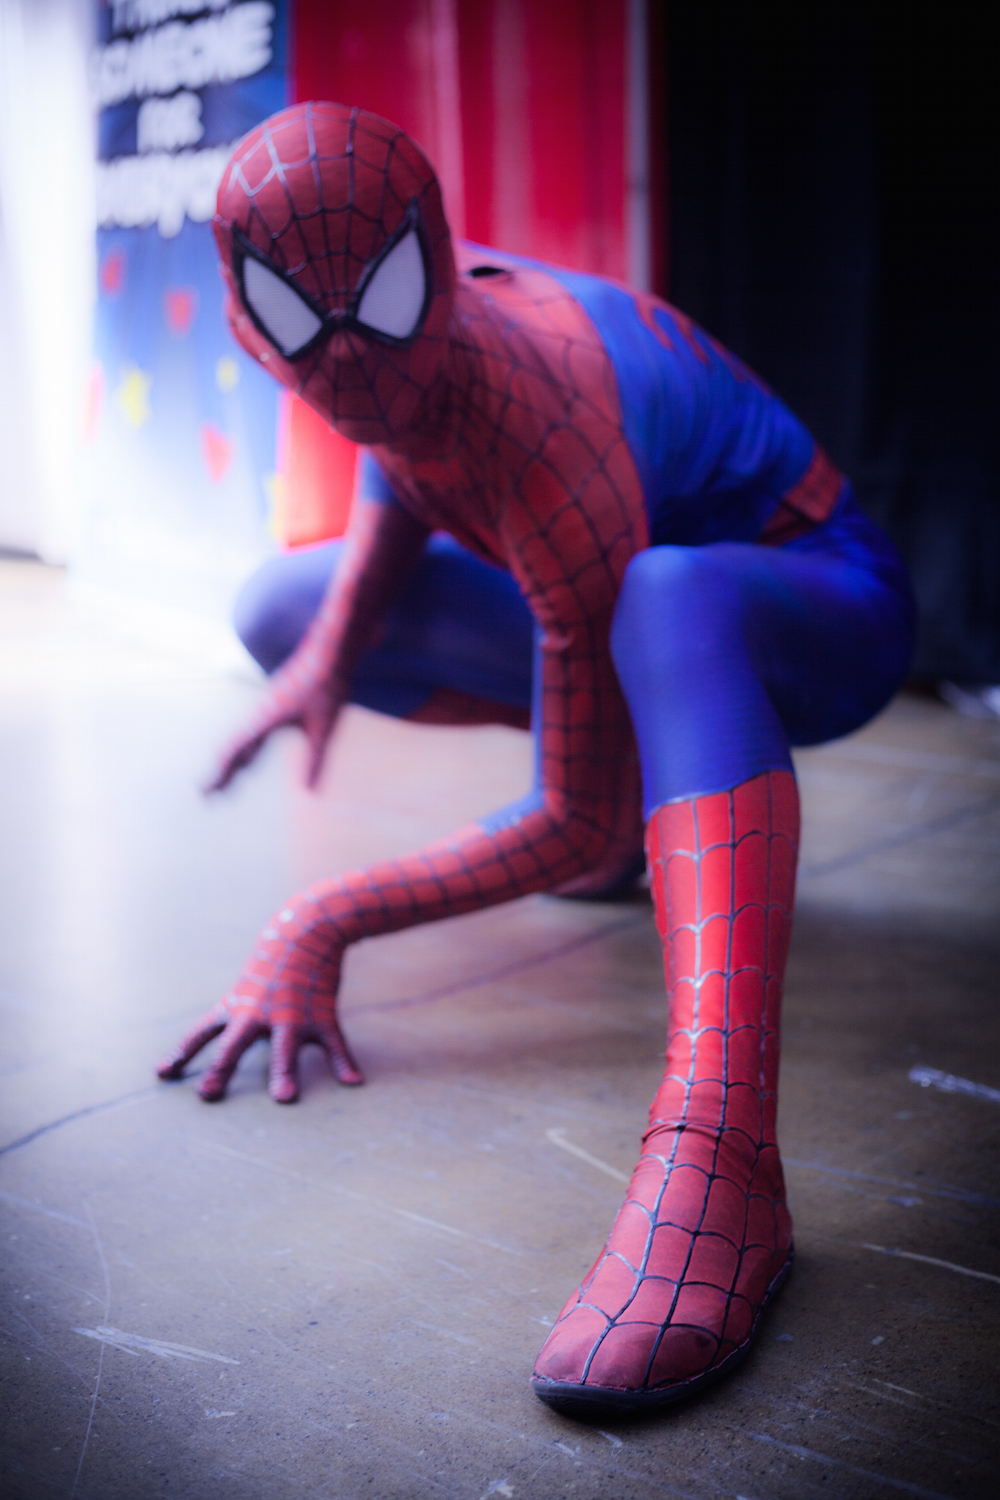 Spider Man cosplay photographs